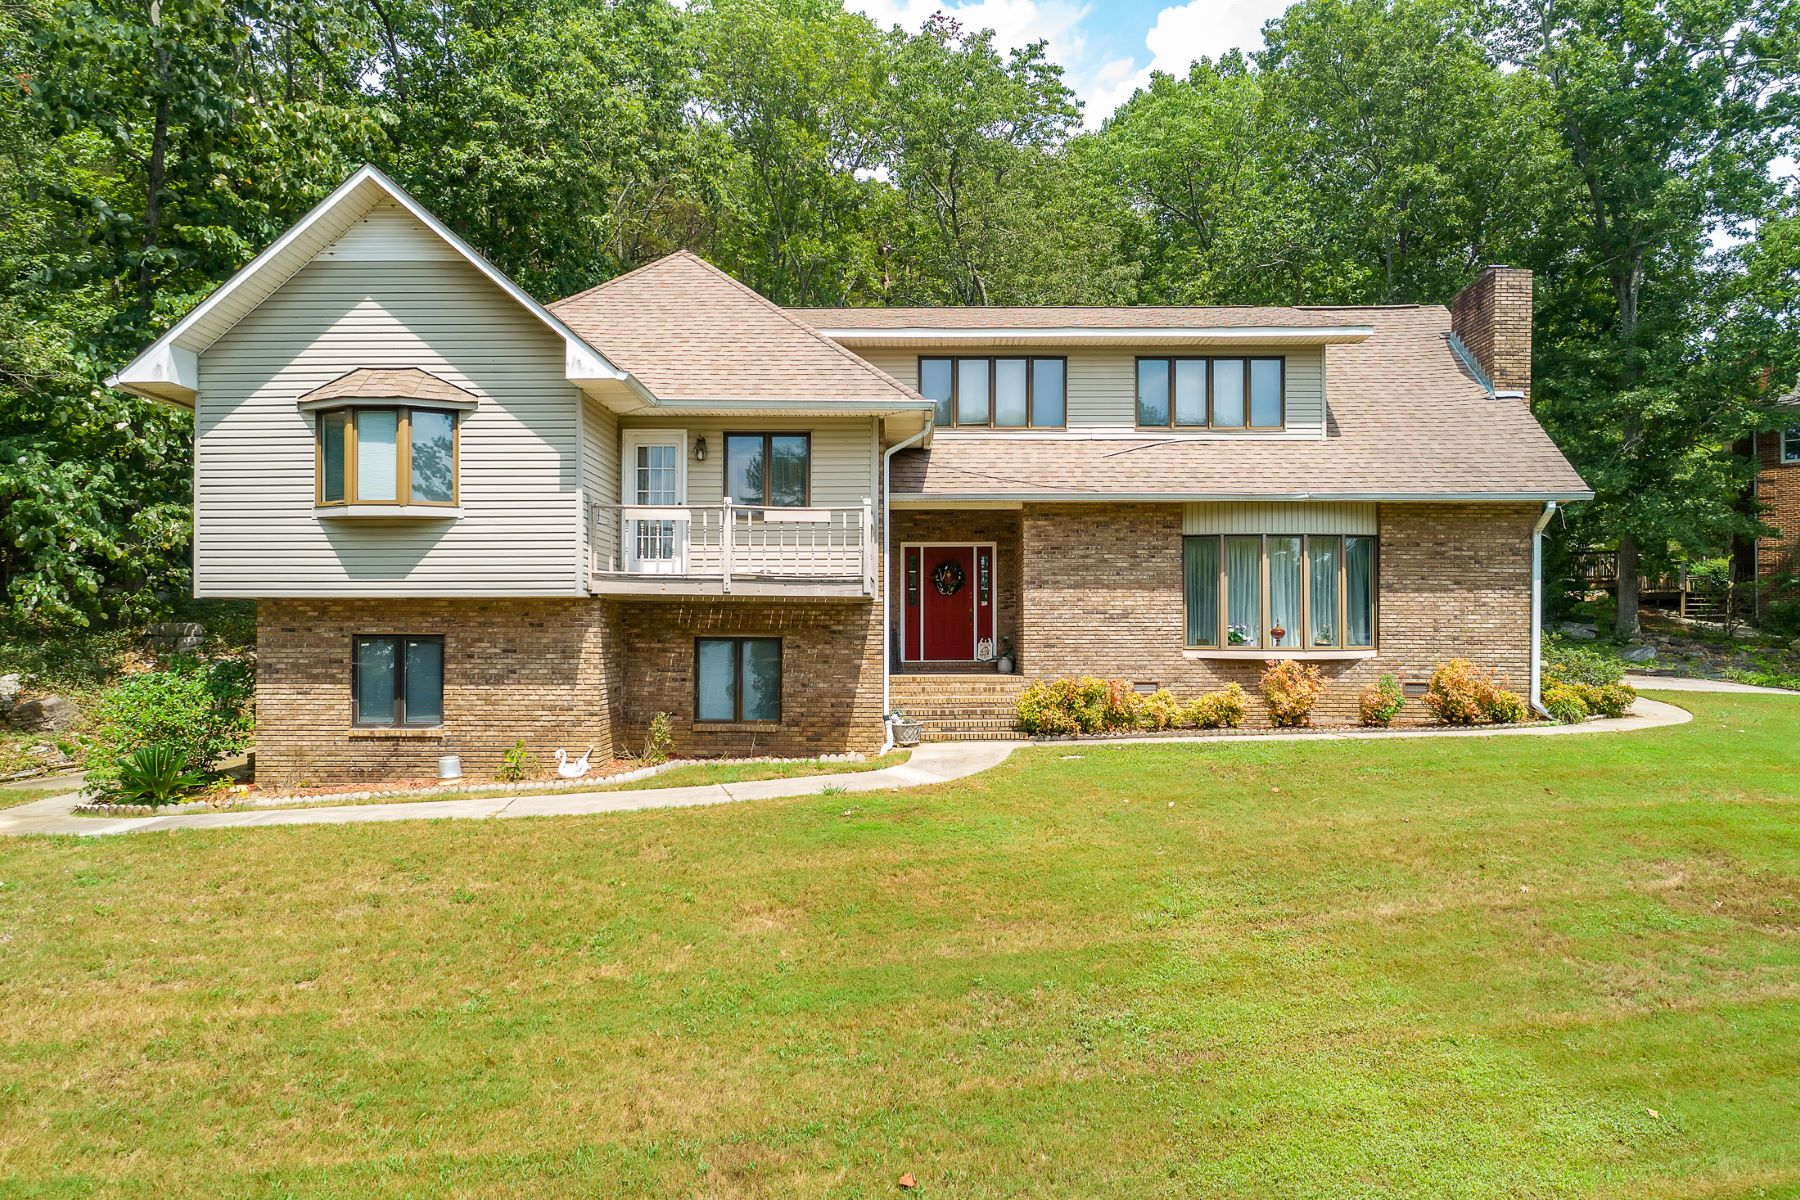 Single Family Homes for Active at 2401 Wyeth Drive Guntersville, Alabama 35976 United States